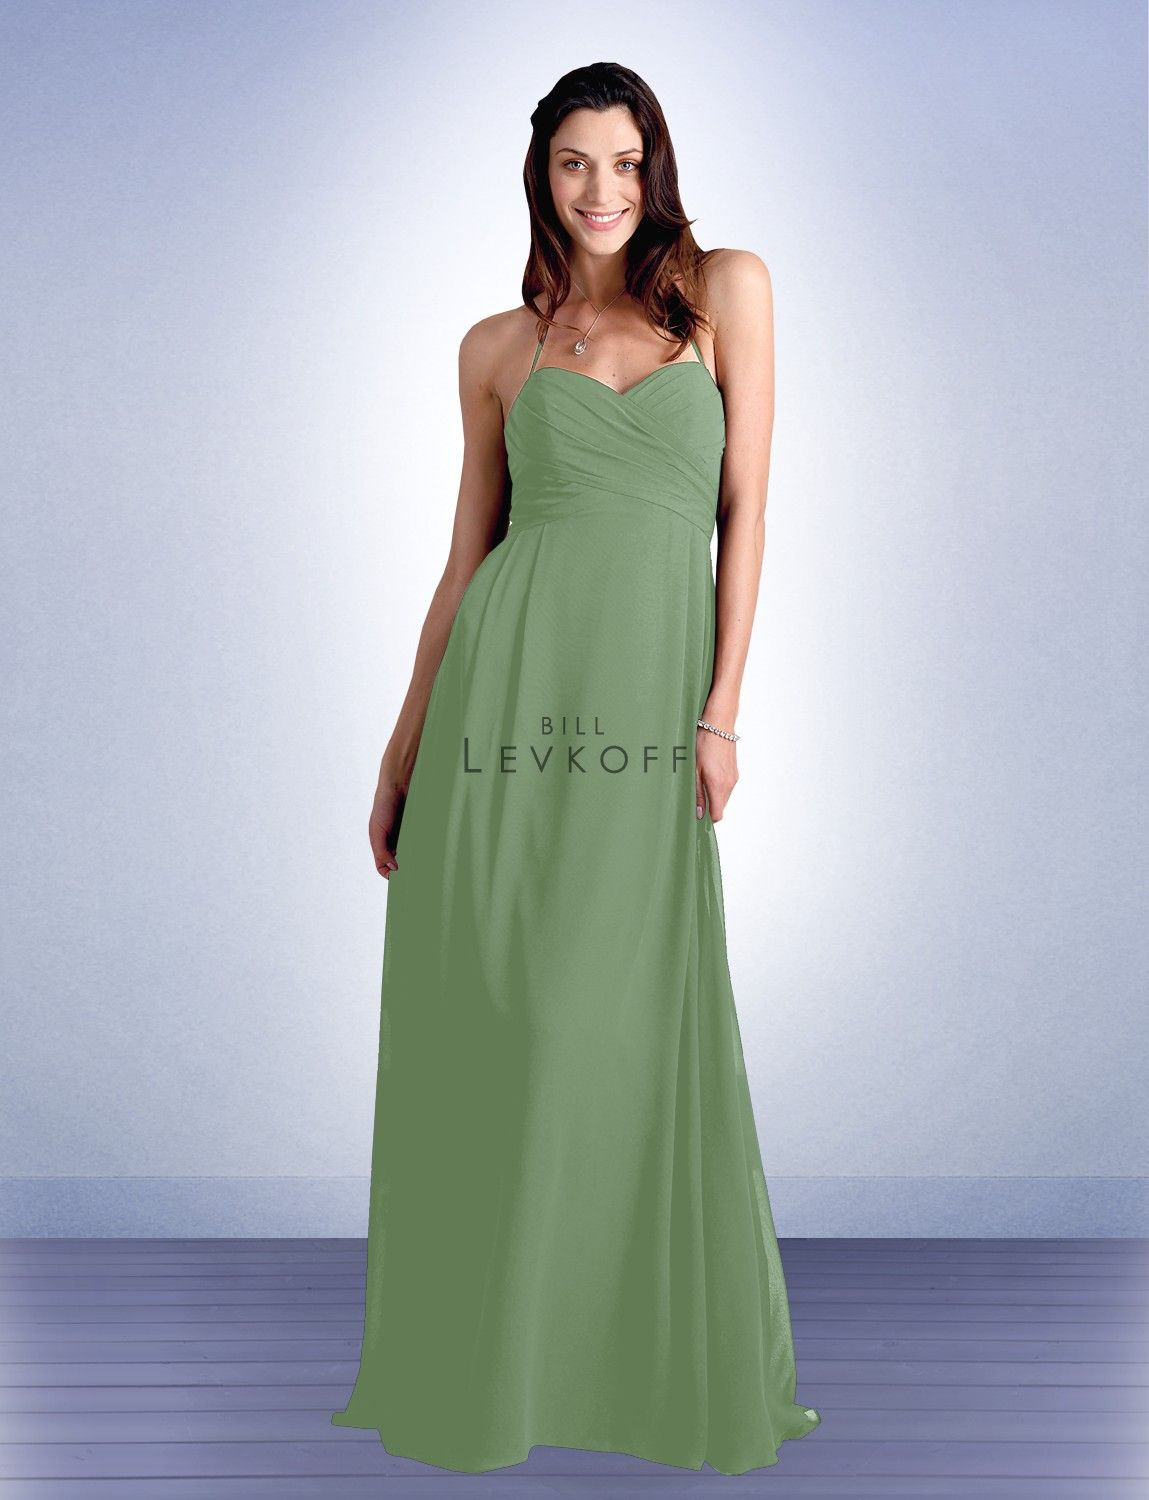 Bridesmaid Dress Style 430 Bill Levkoff - MOHs - Pistachio, Bridesmaids - Clover